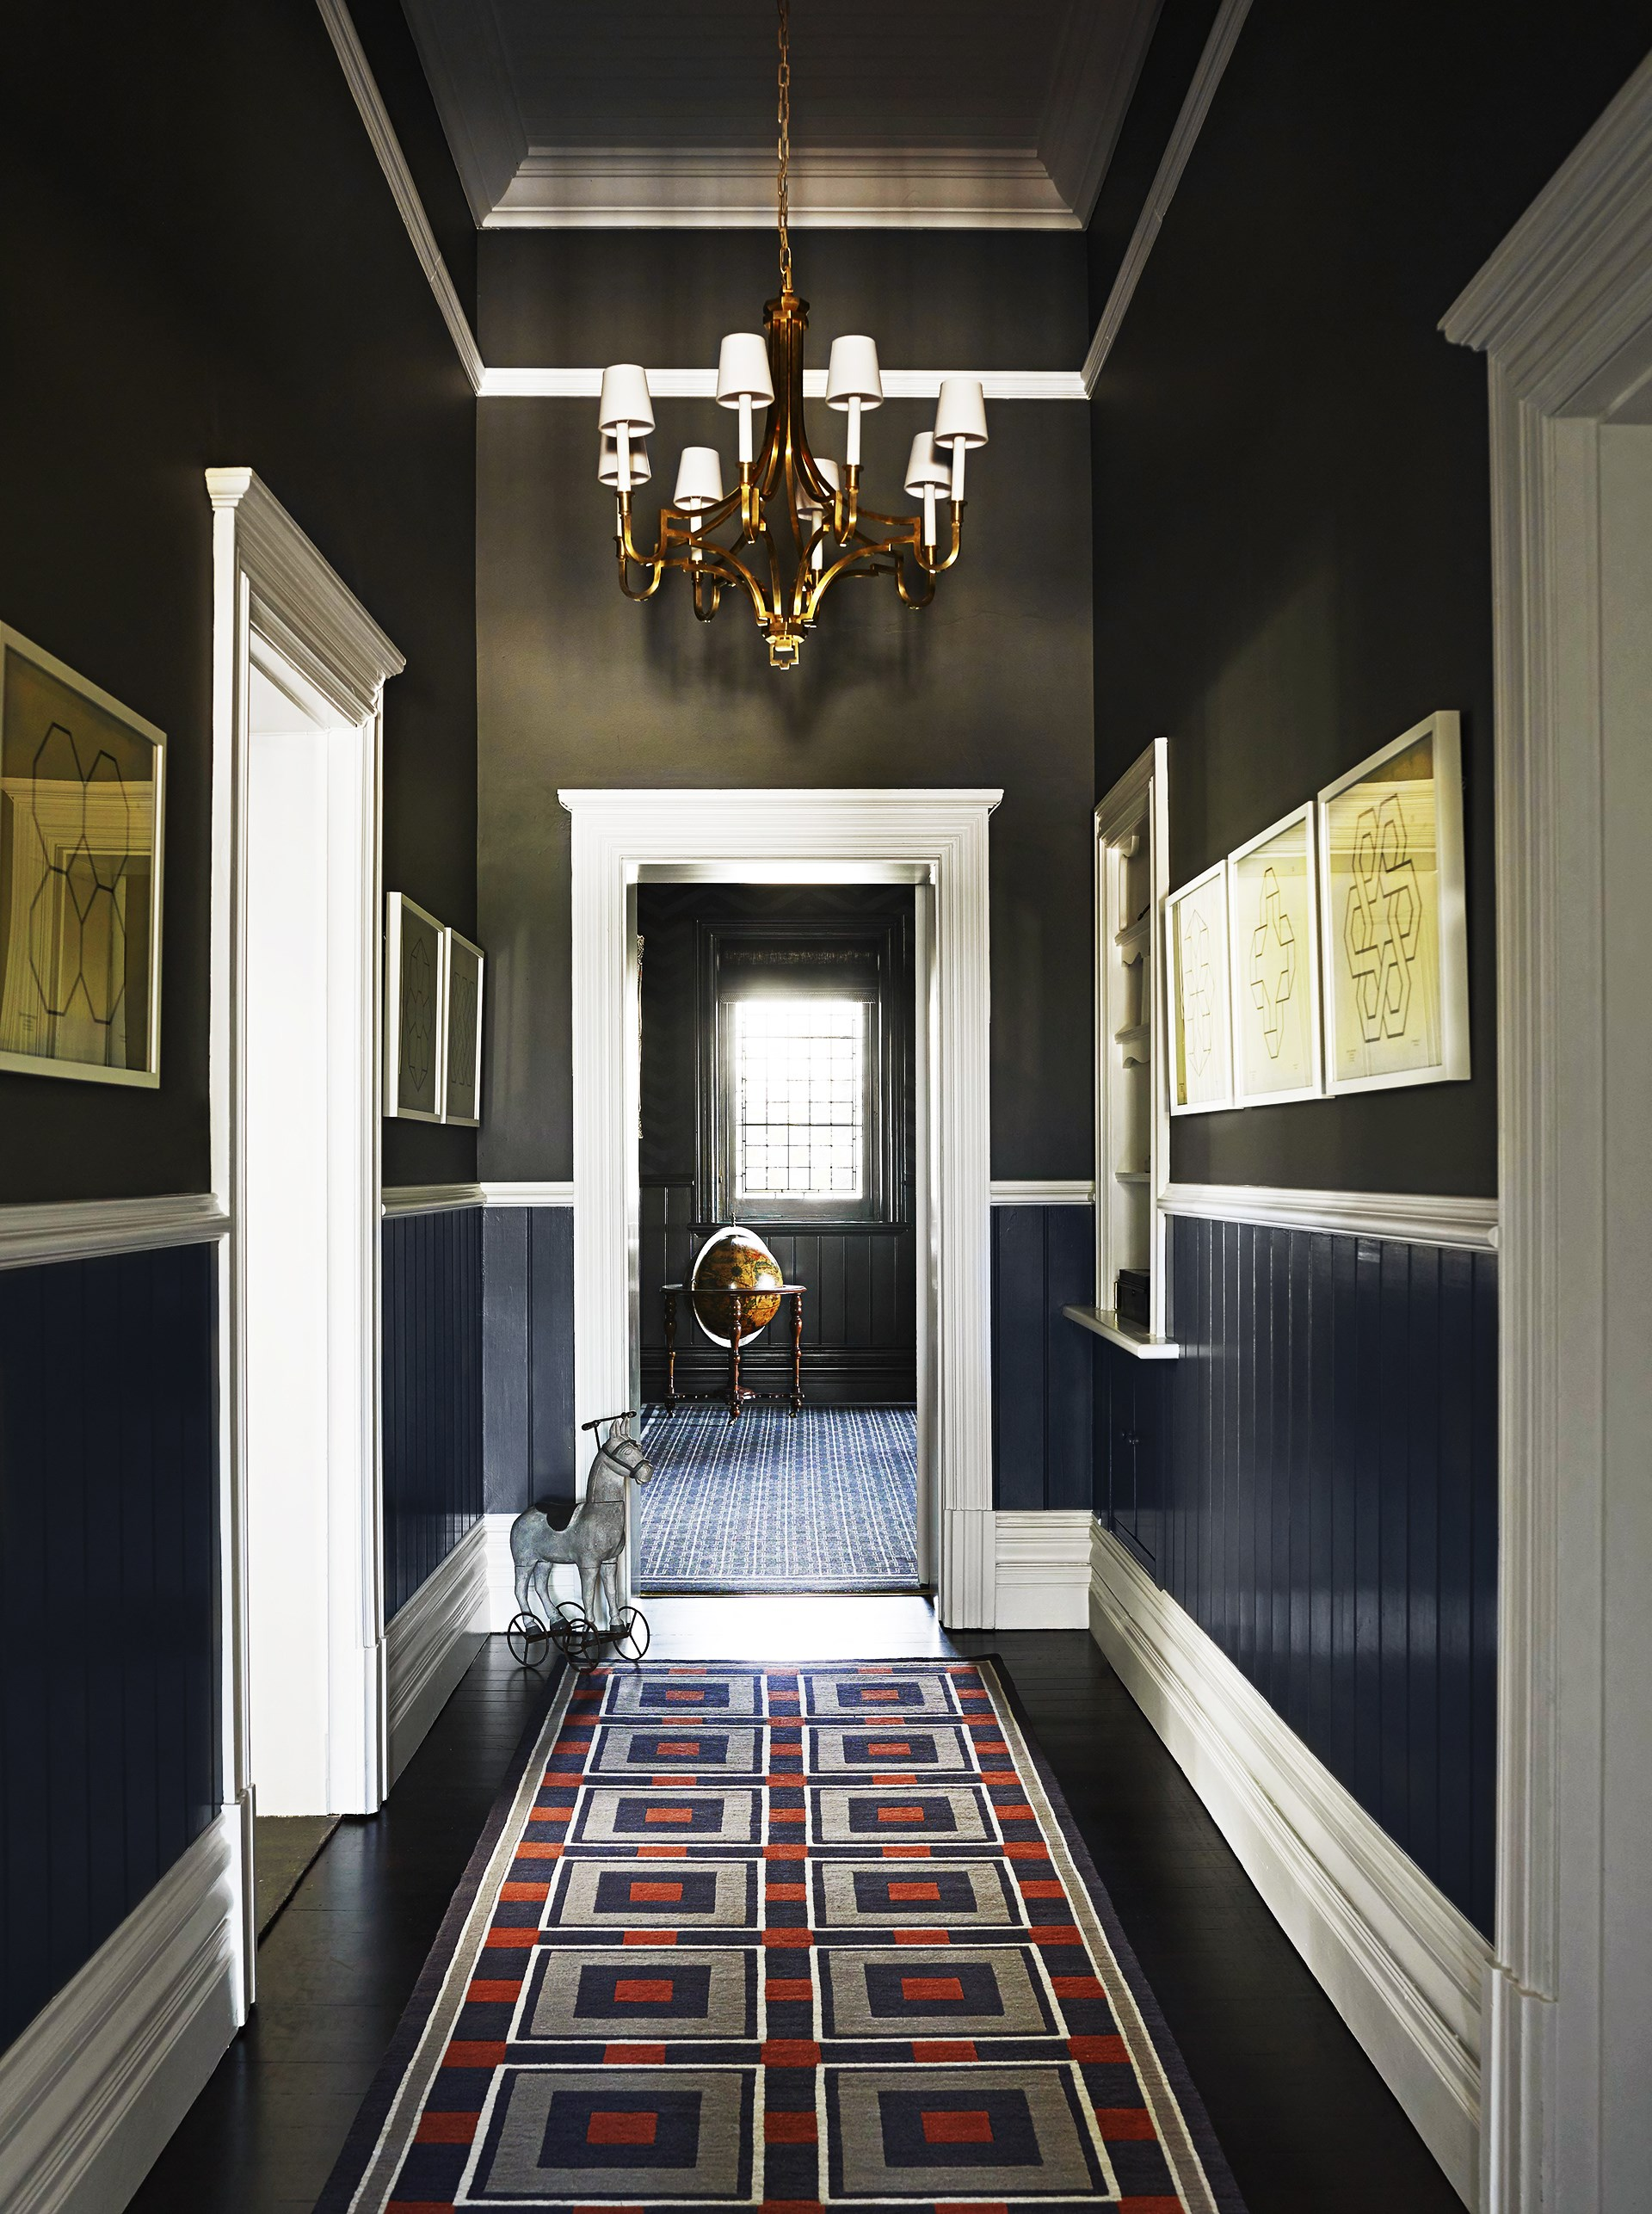 The original features of this [1880s homestead](http://www.homestolove.com.au/horse-stud-homestead-country-elegance-2416) which include cornices, dado rails, panelling and moulding are contemporised with a lick of paint. *Photo: Anson Smart*